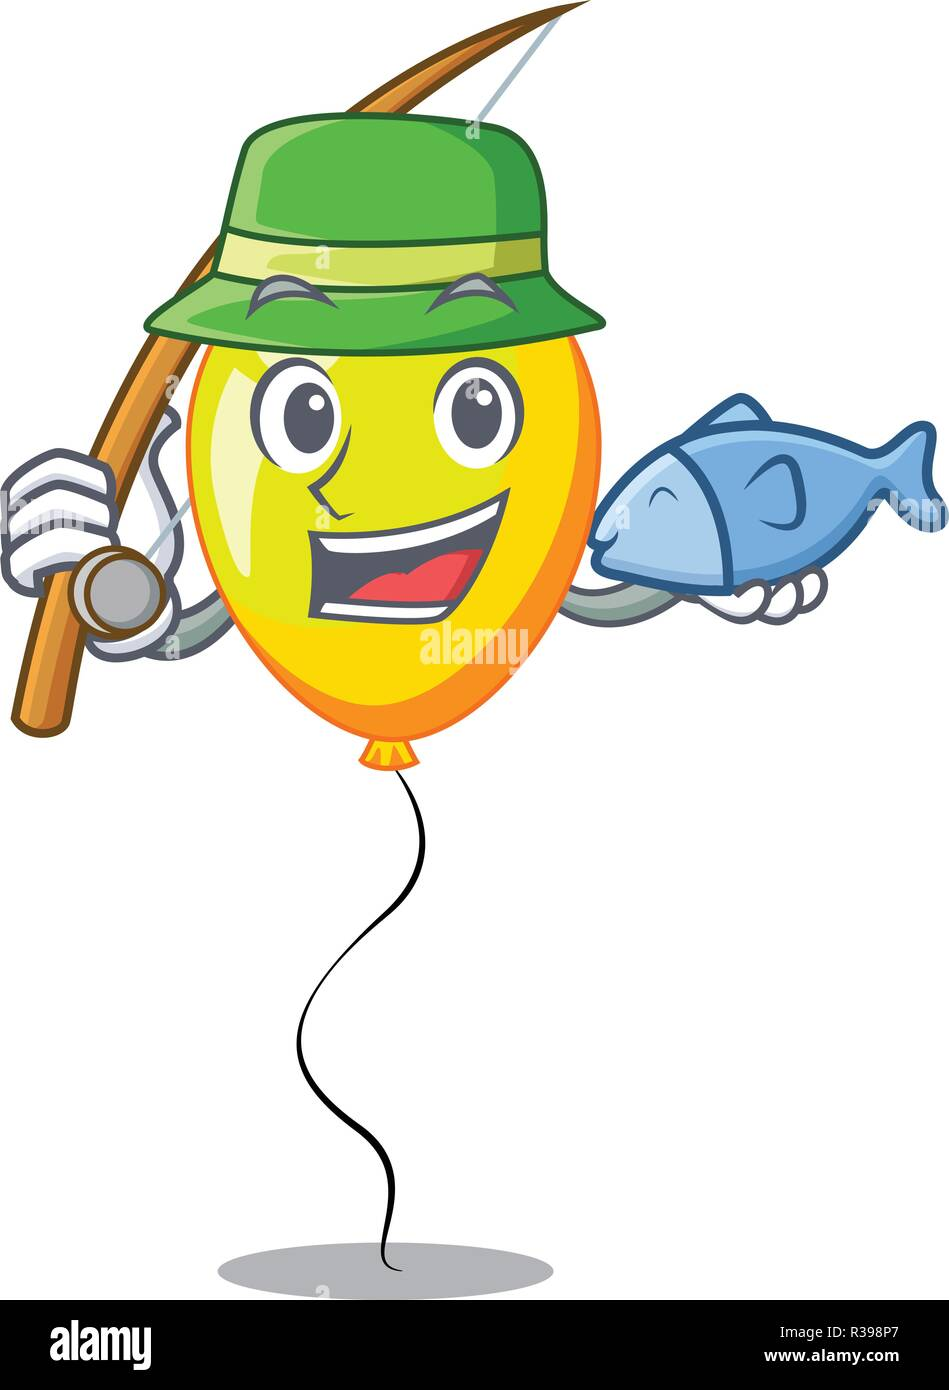 Fishing character yellow balloon ticket on holiday - Stock Image